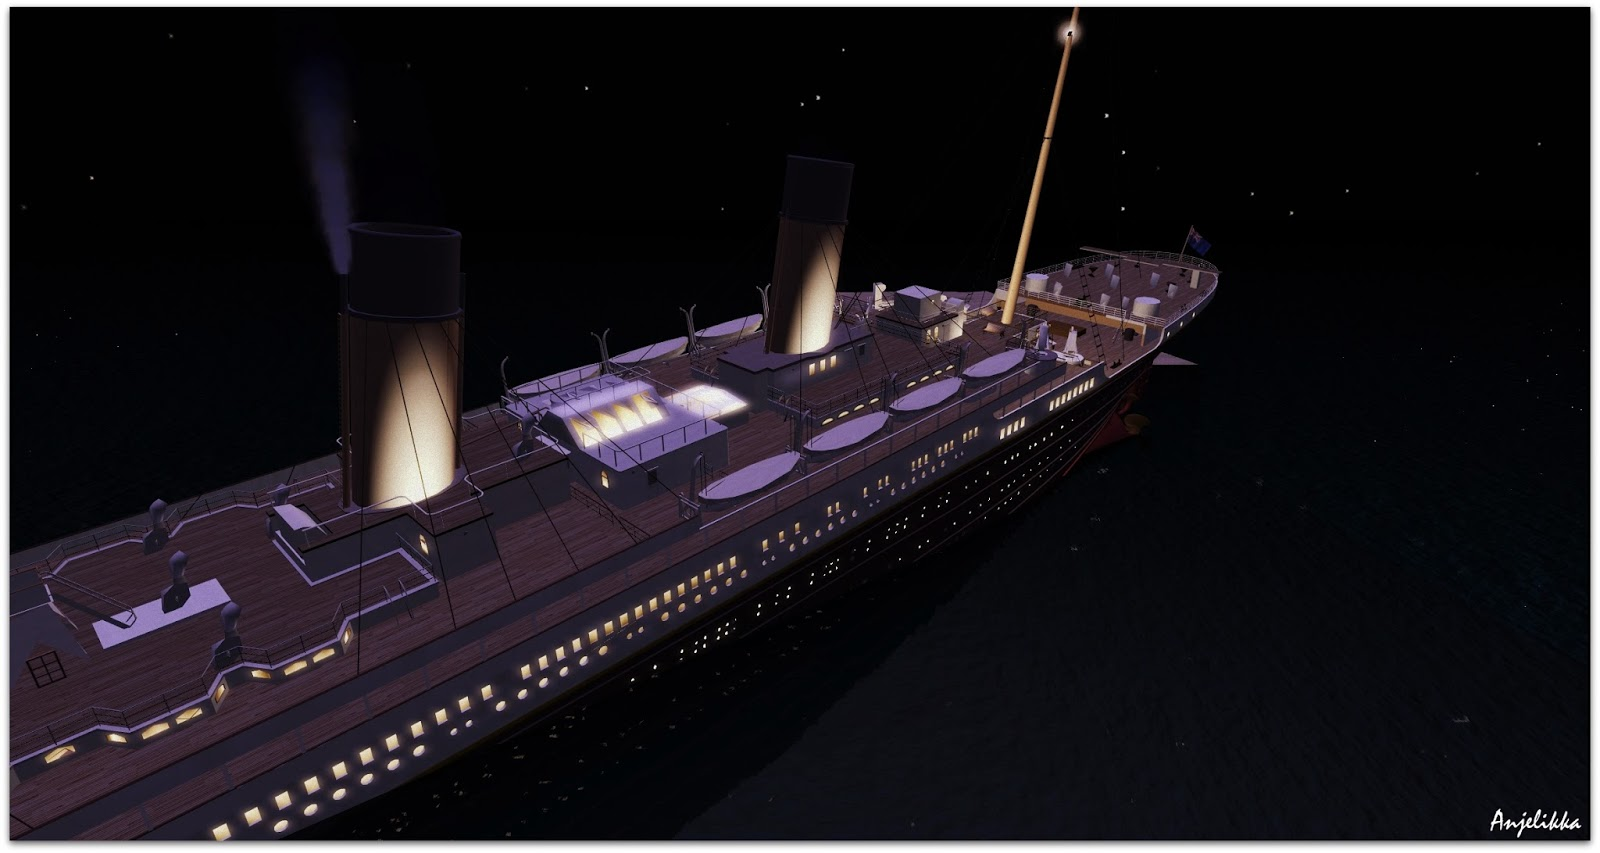 engineering ethics of titanic sinking In minding the machines, two leading experts in technological risk assessment analyze more than 30 disasters—from the titanic sinking to engineering ethics.